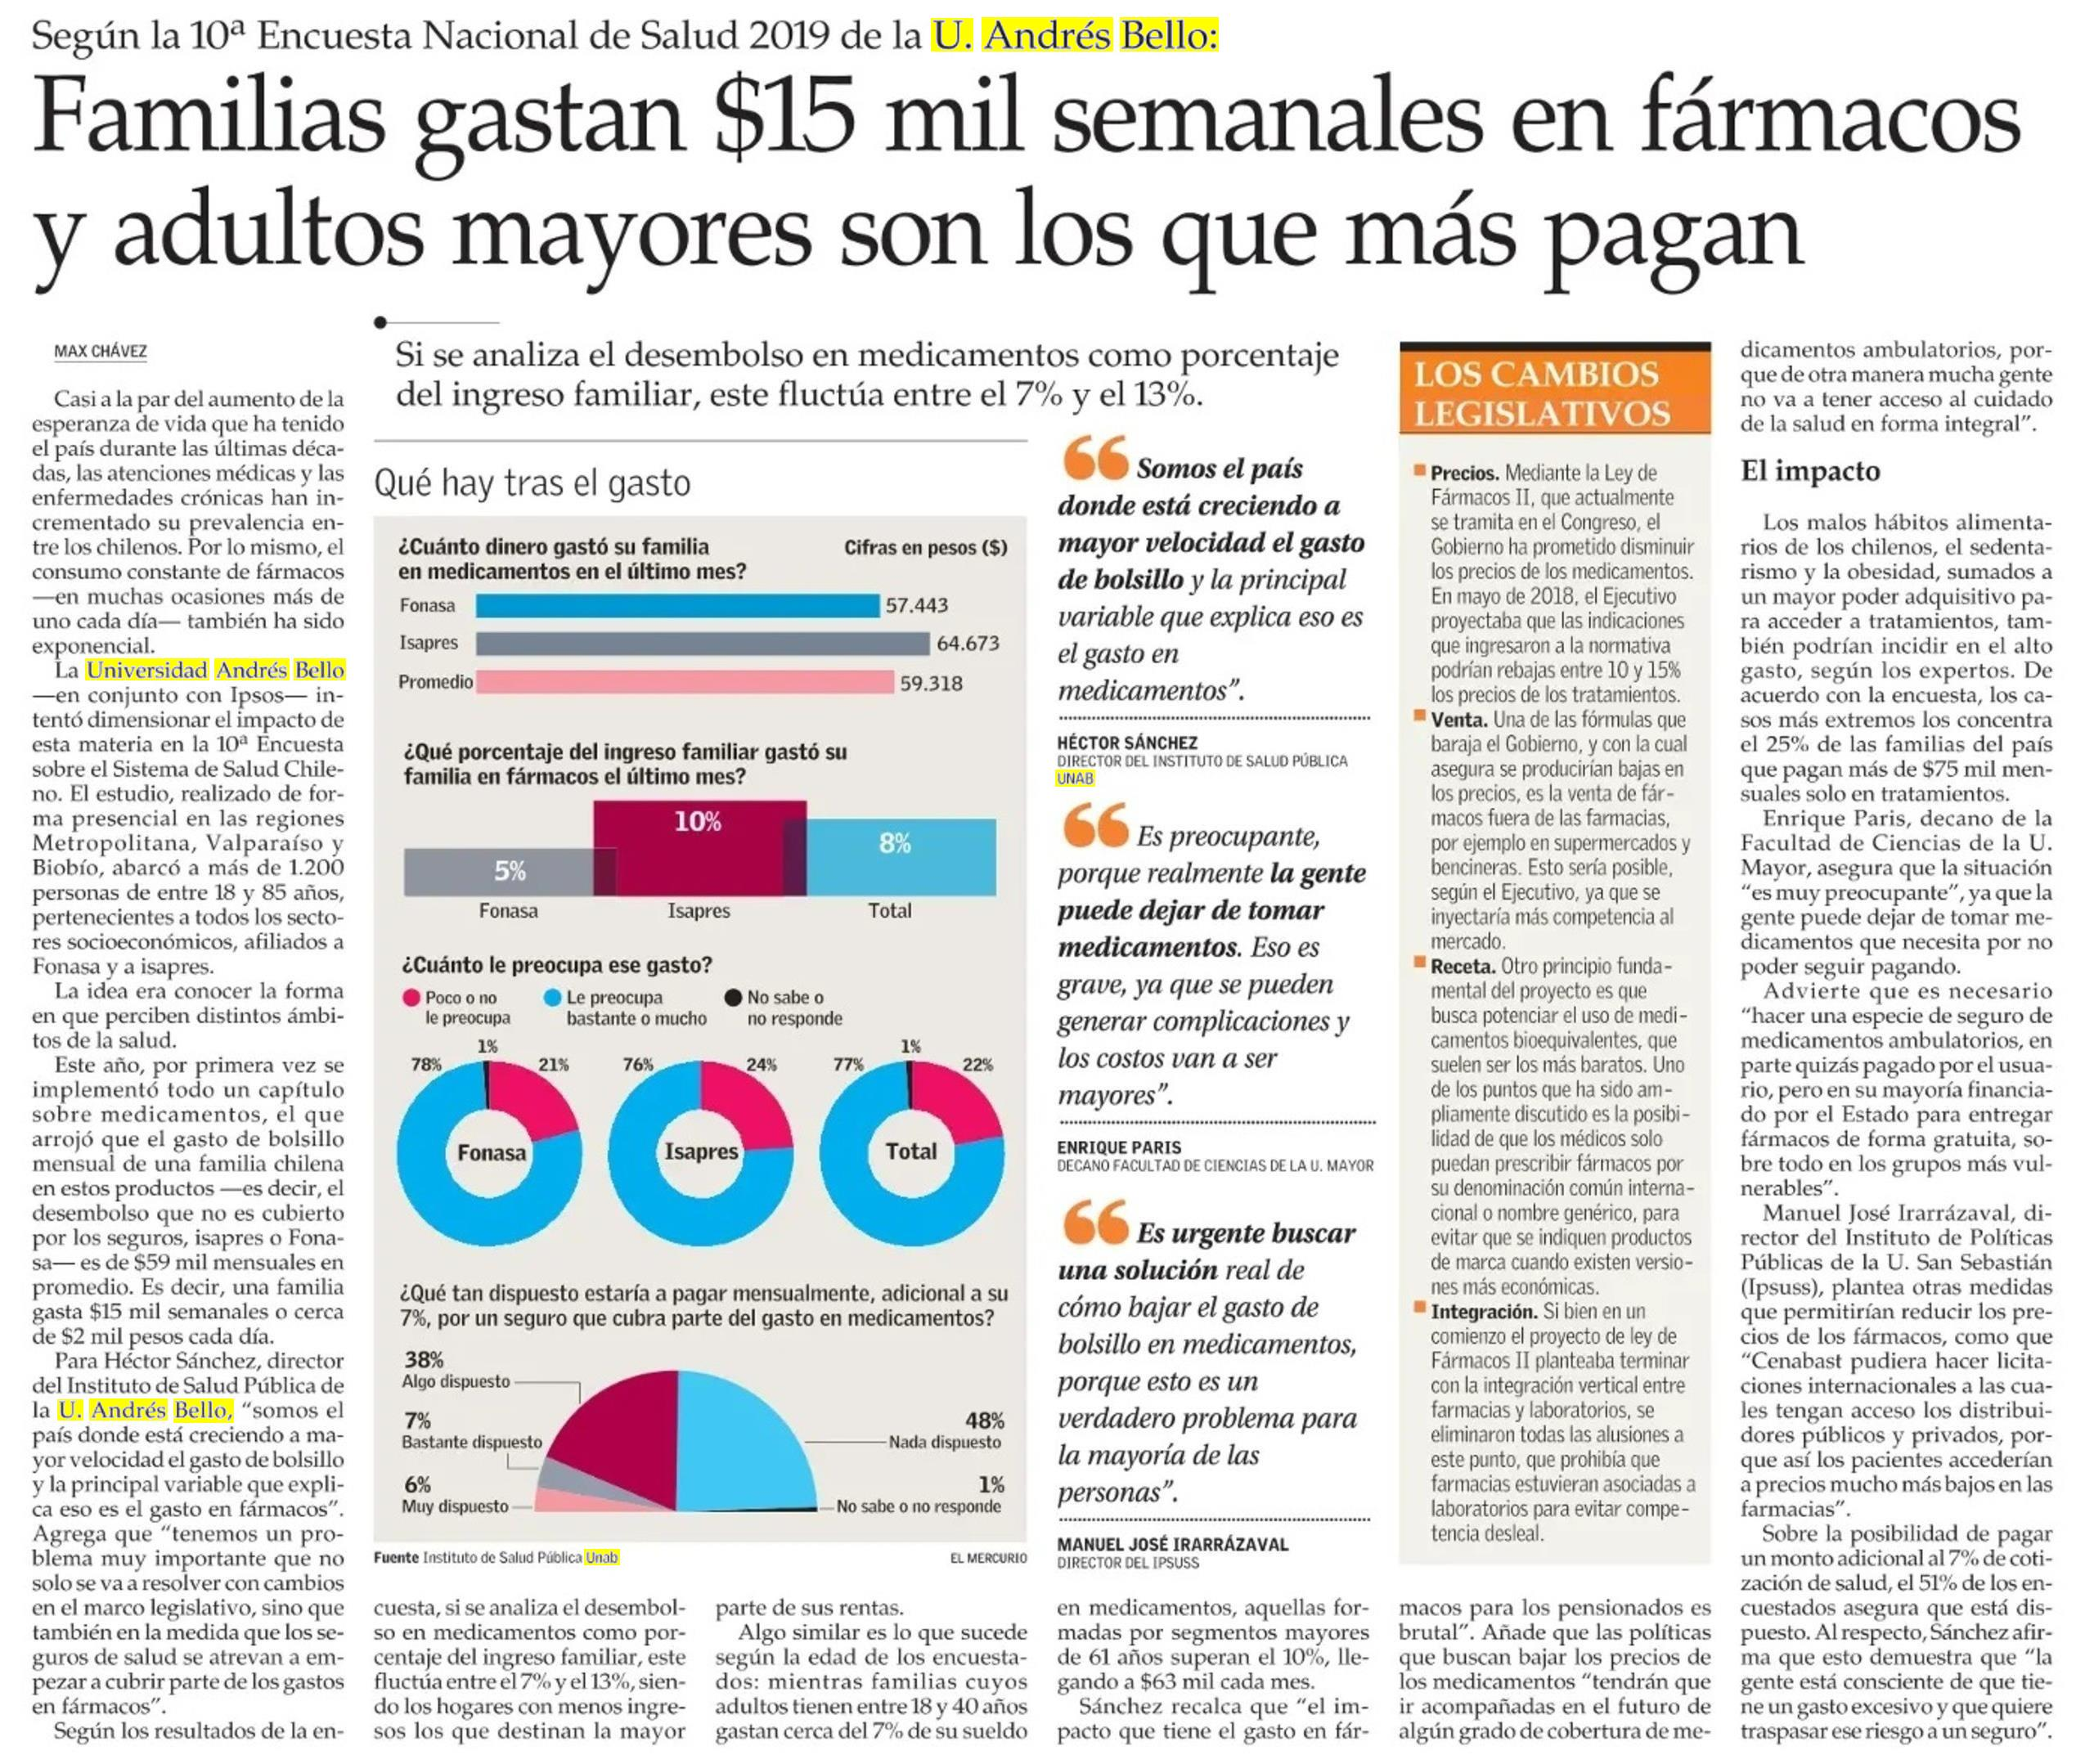 El Mercurio Farmacos